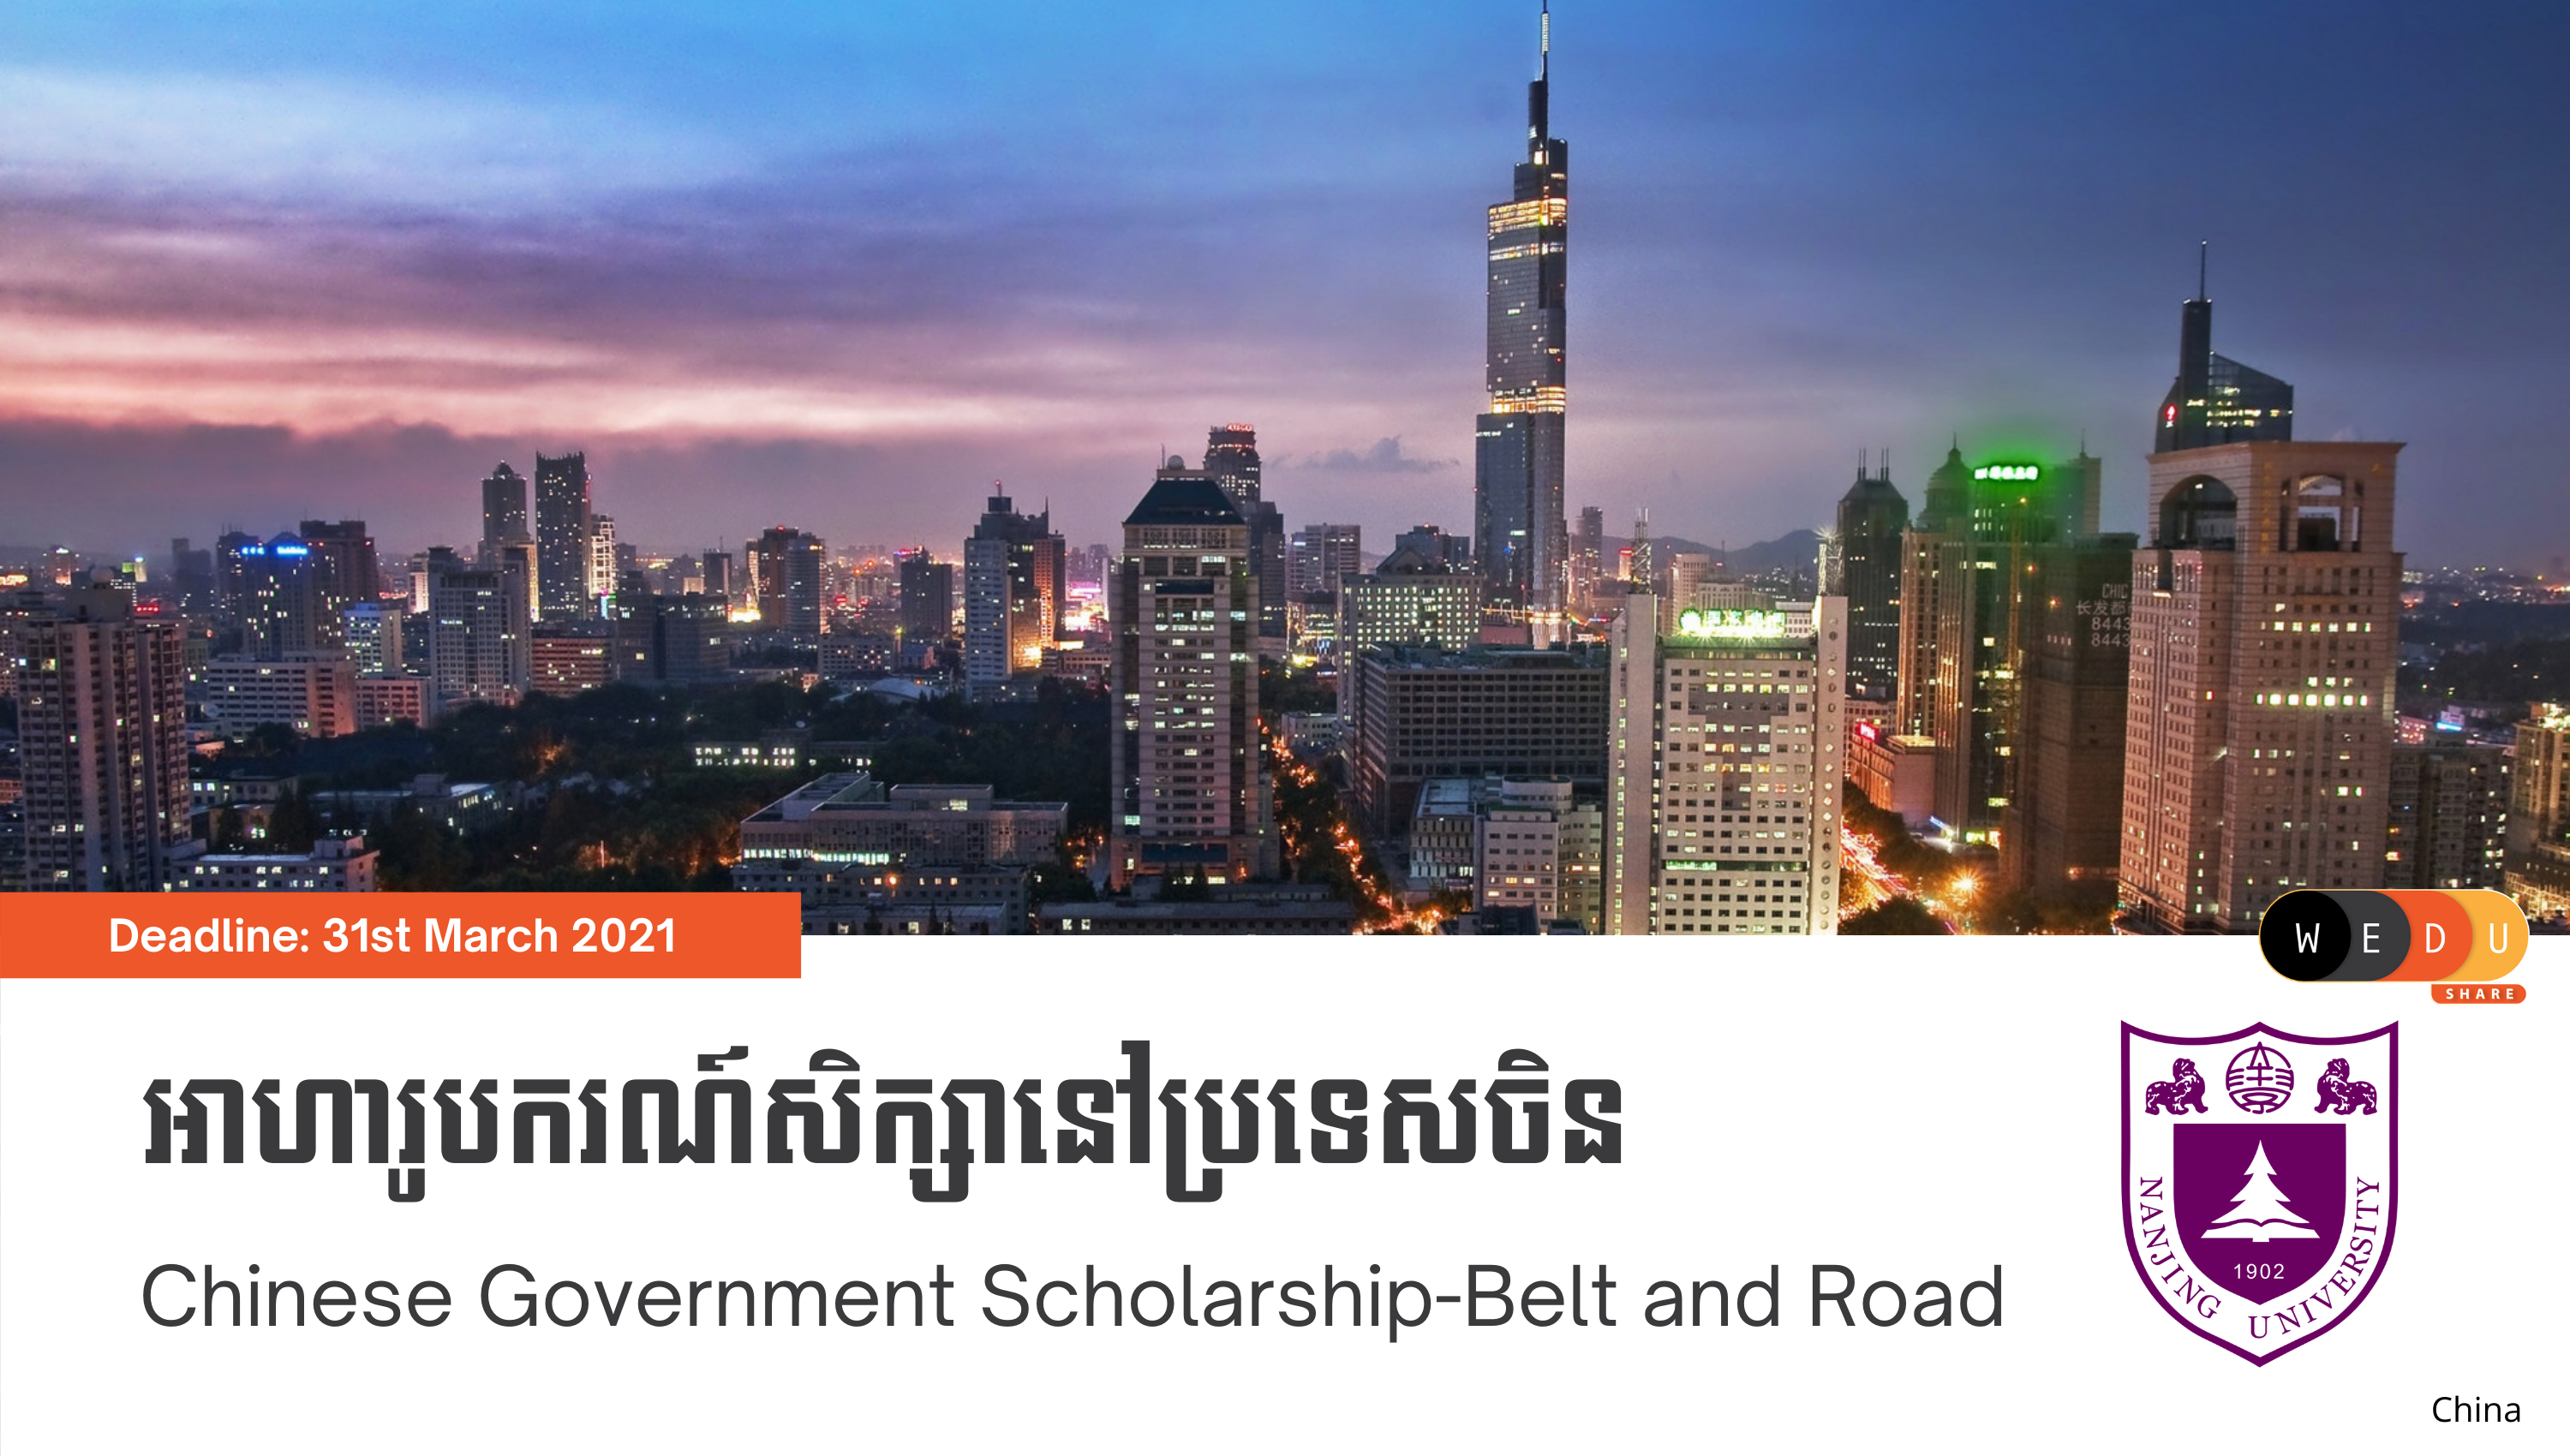 2021 Chinese Government Scholarship-Belt and Road Program